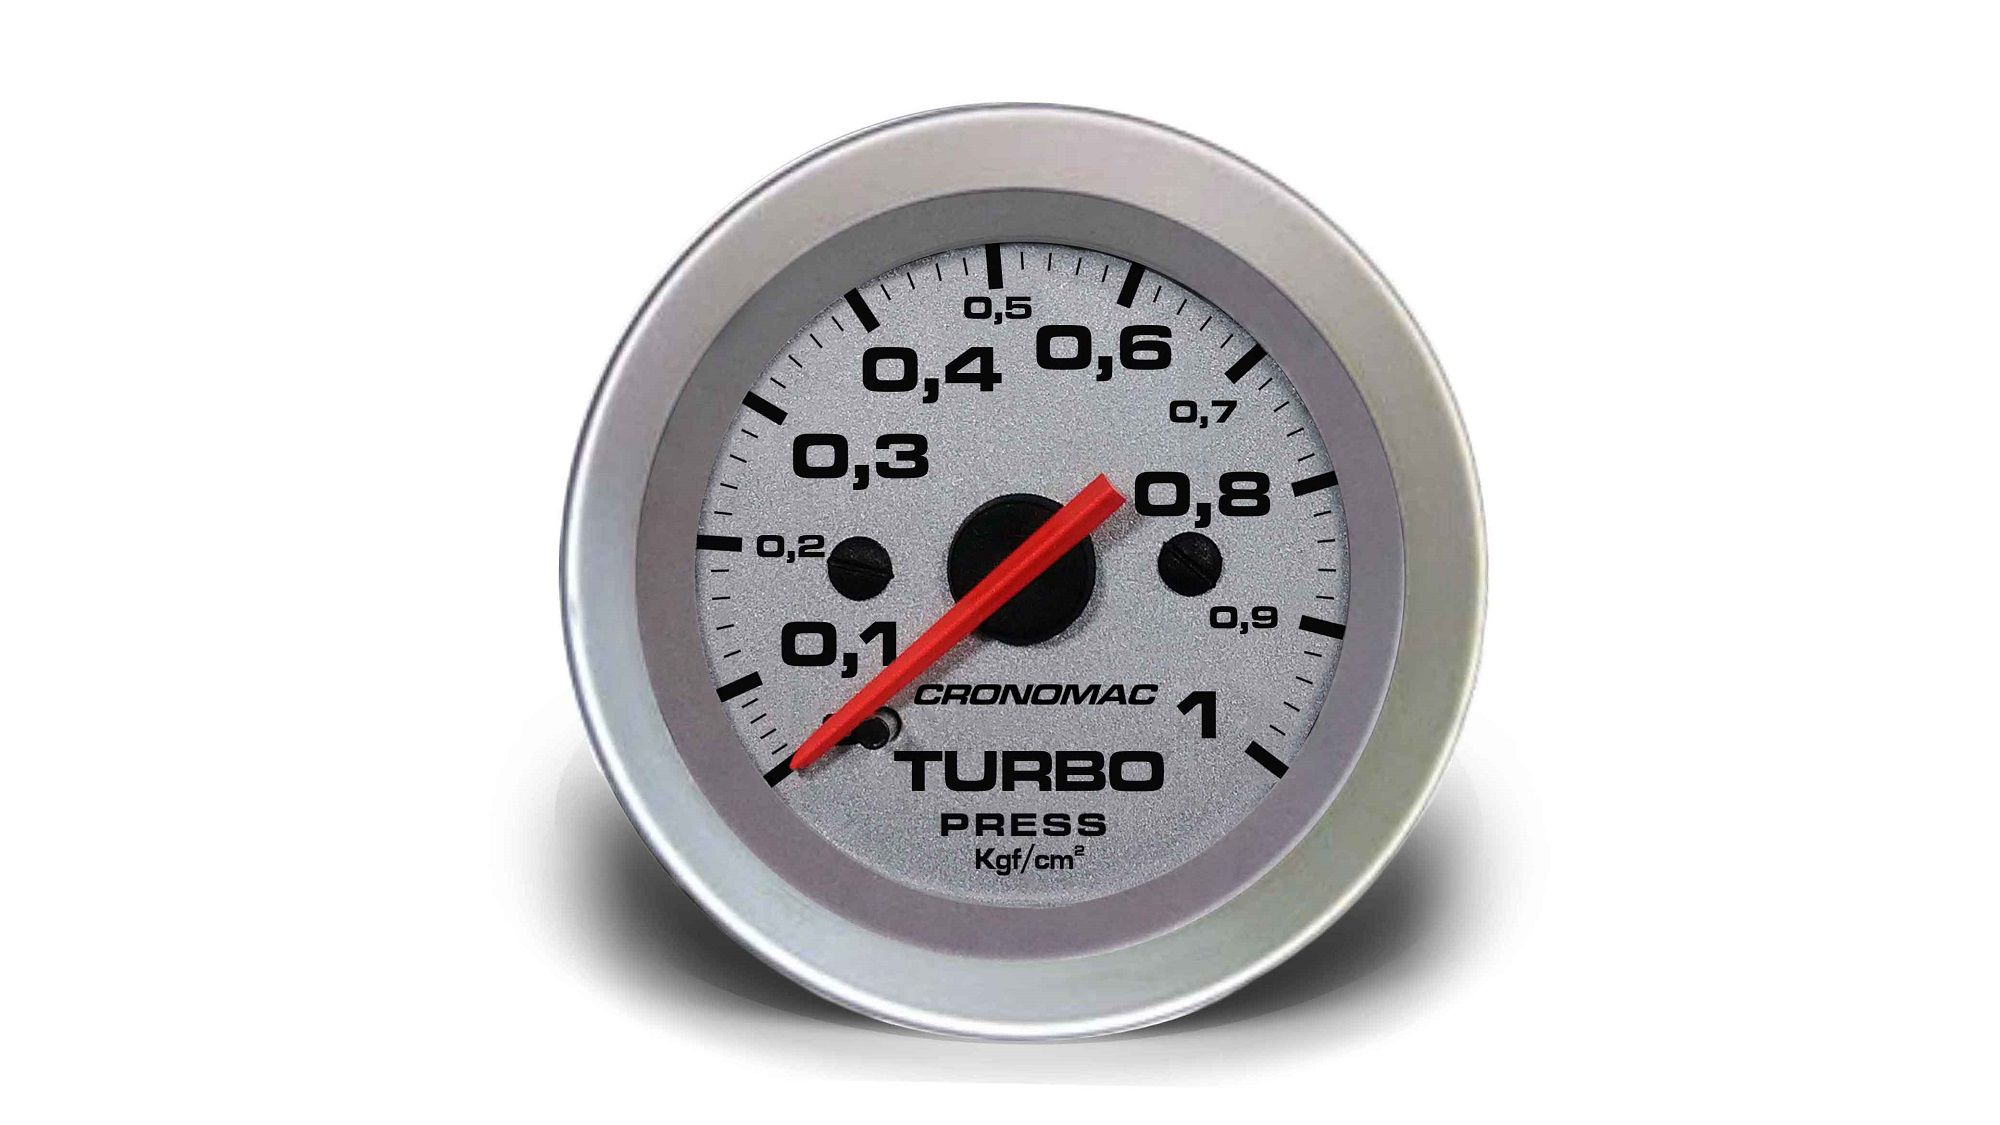 Relogio Pressao de Turbo 1kg Racing 52mm Cronomac